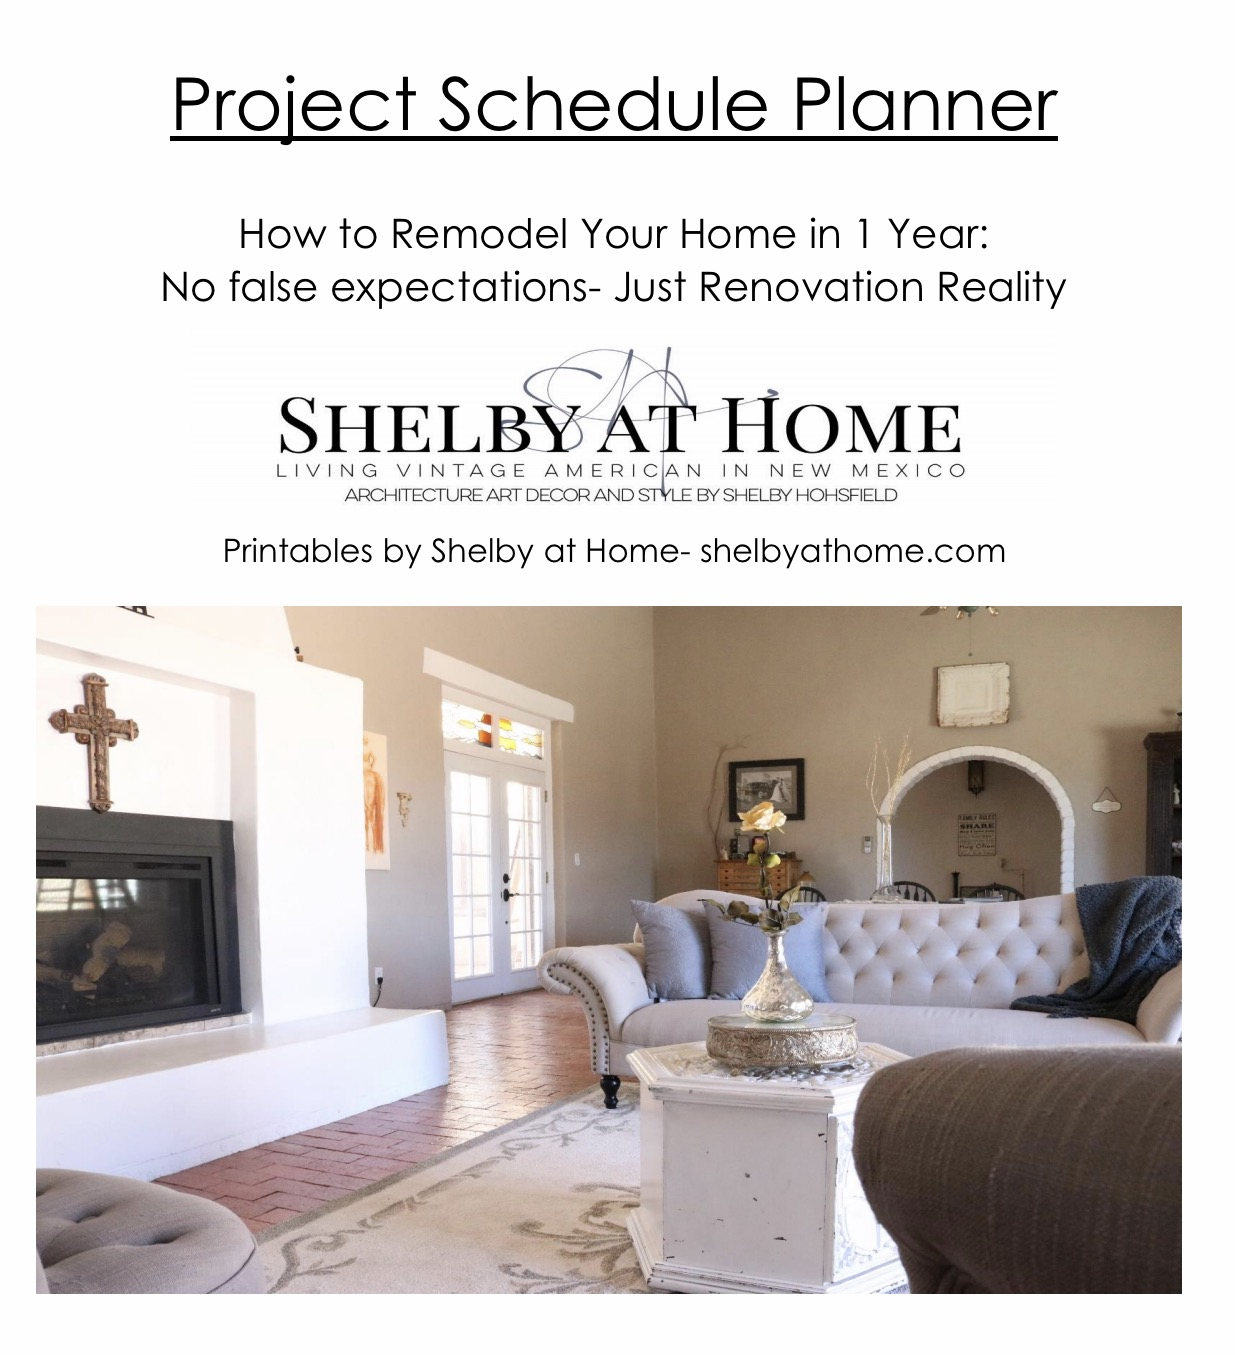 Yearly Project Schedule Planner- shelbyathome.com